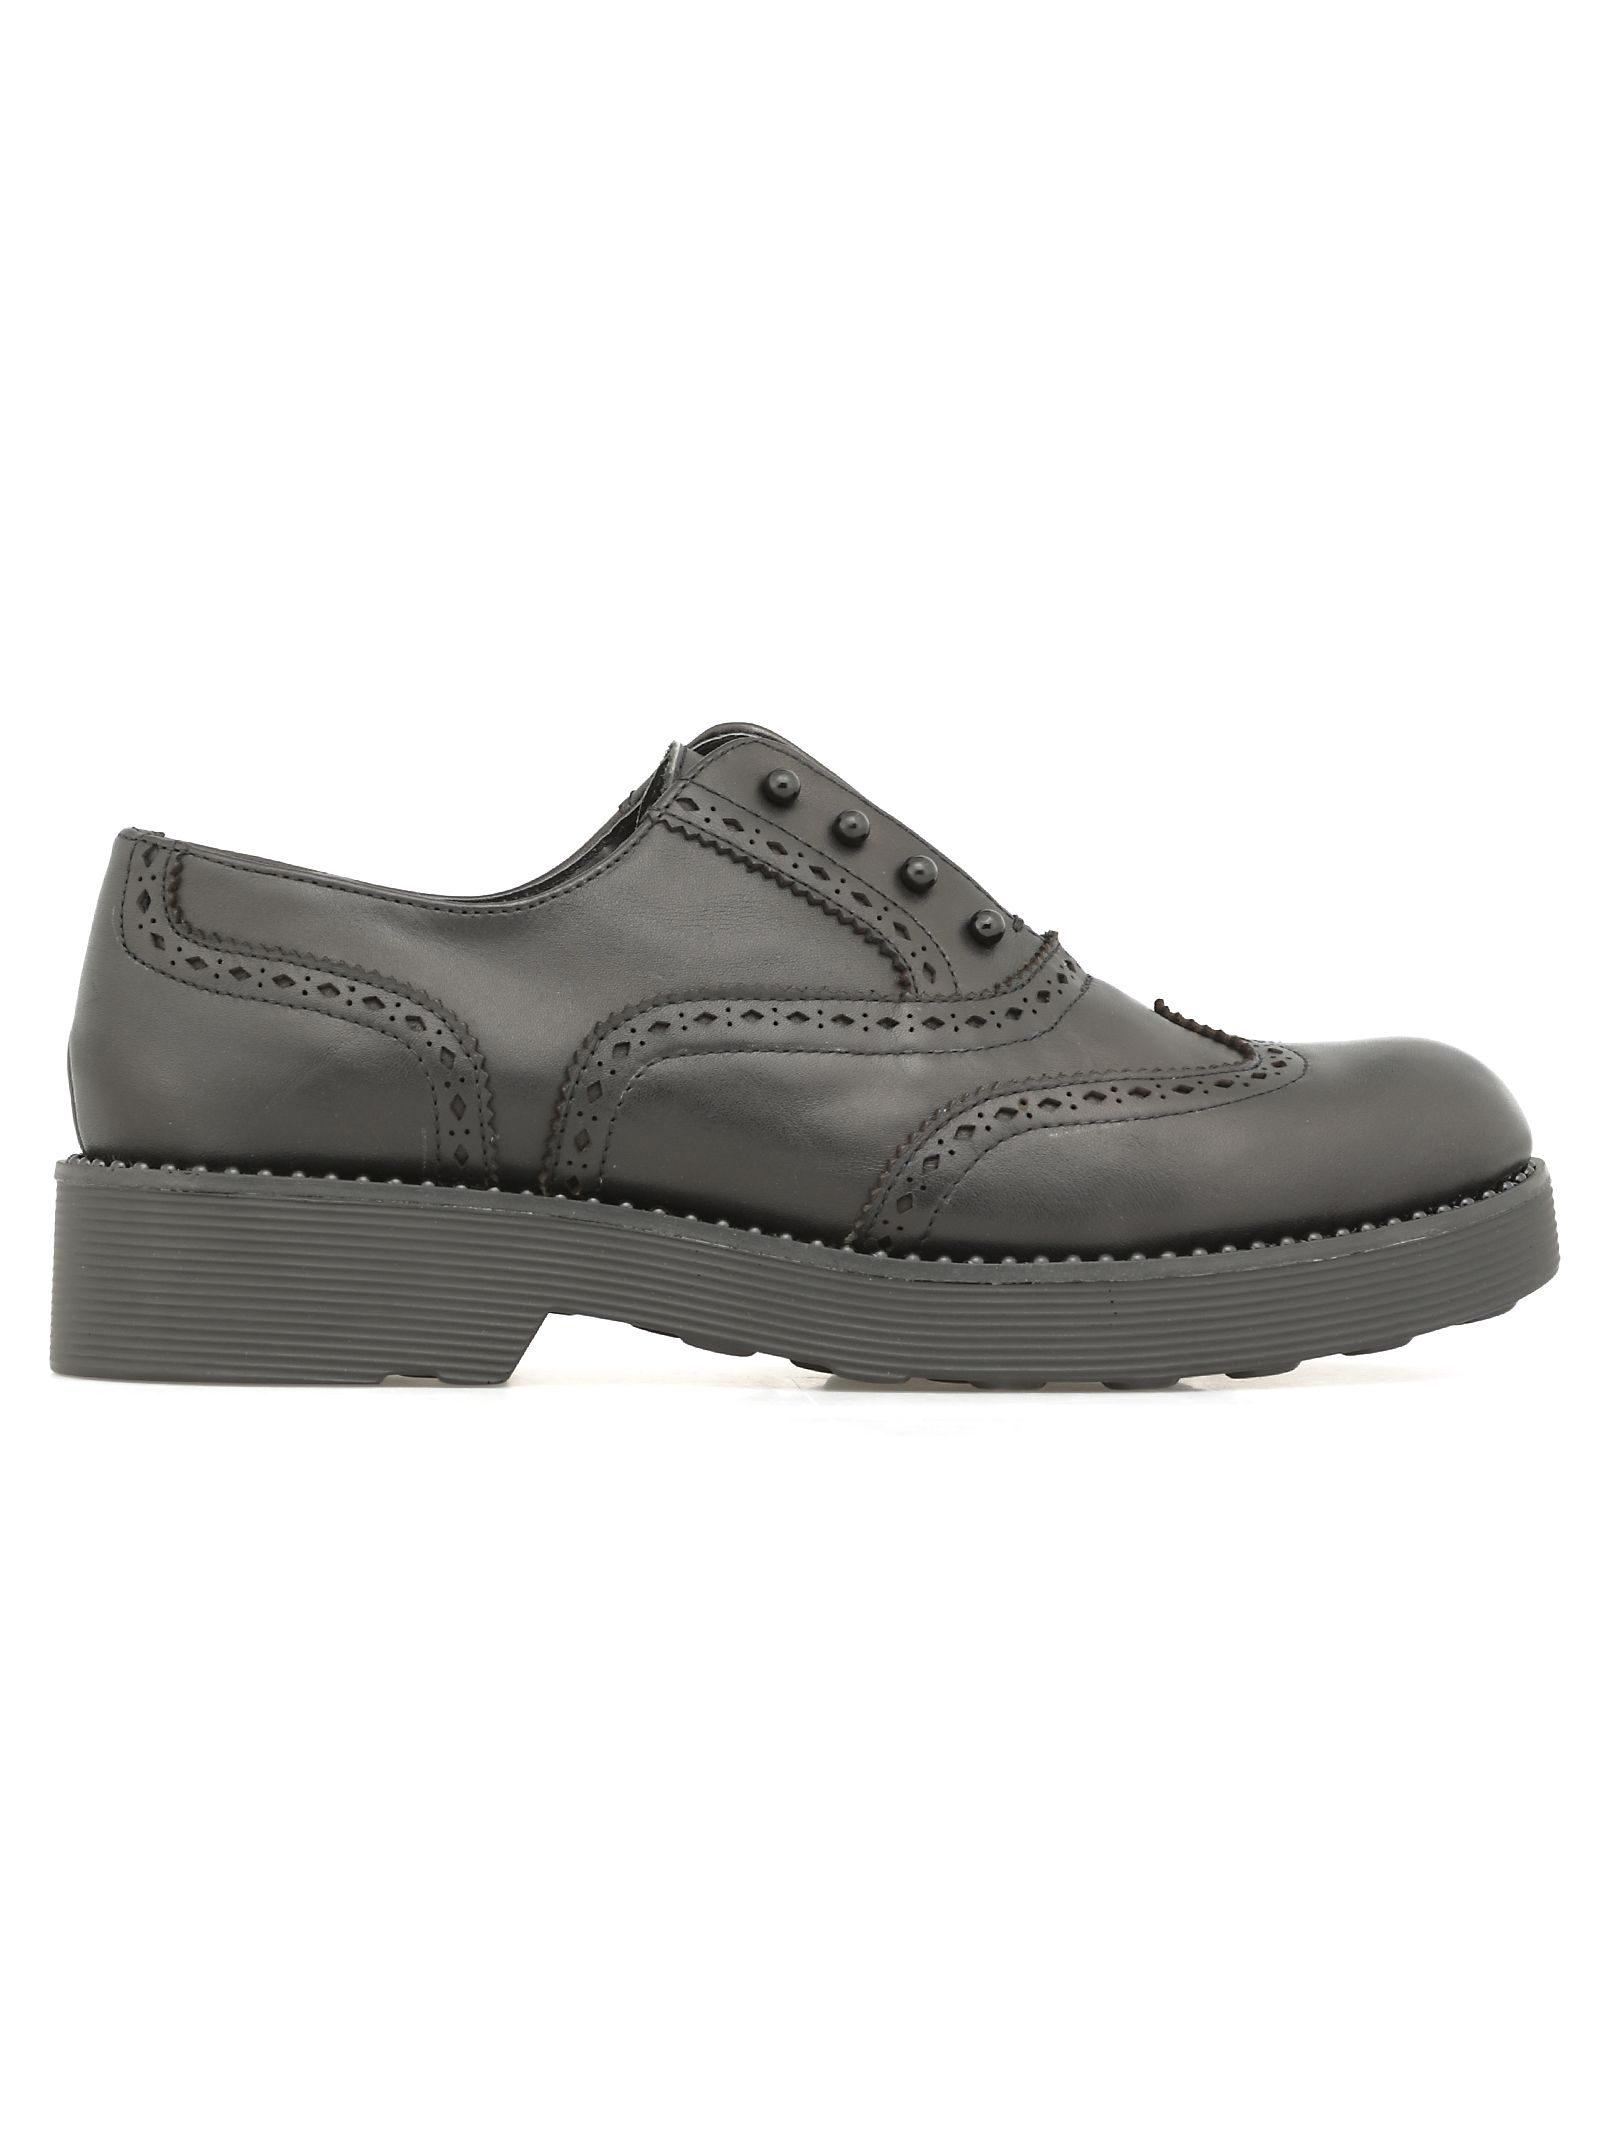 CULT Muse Low 2622 Laceless Shoe in Black